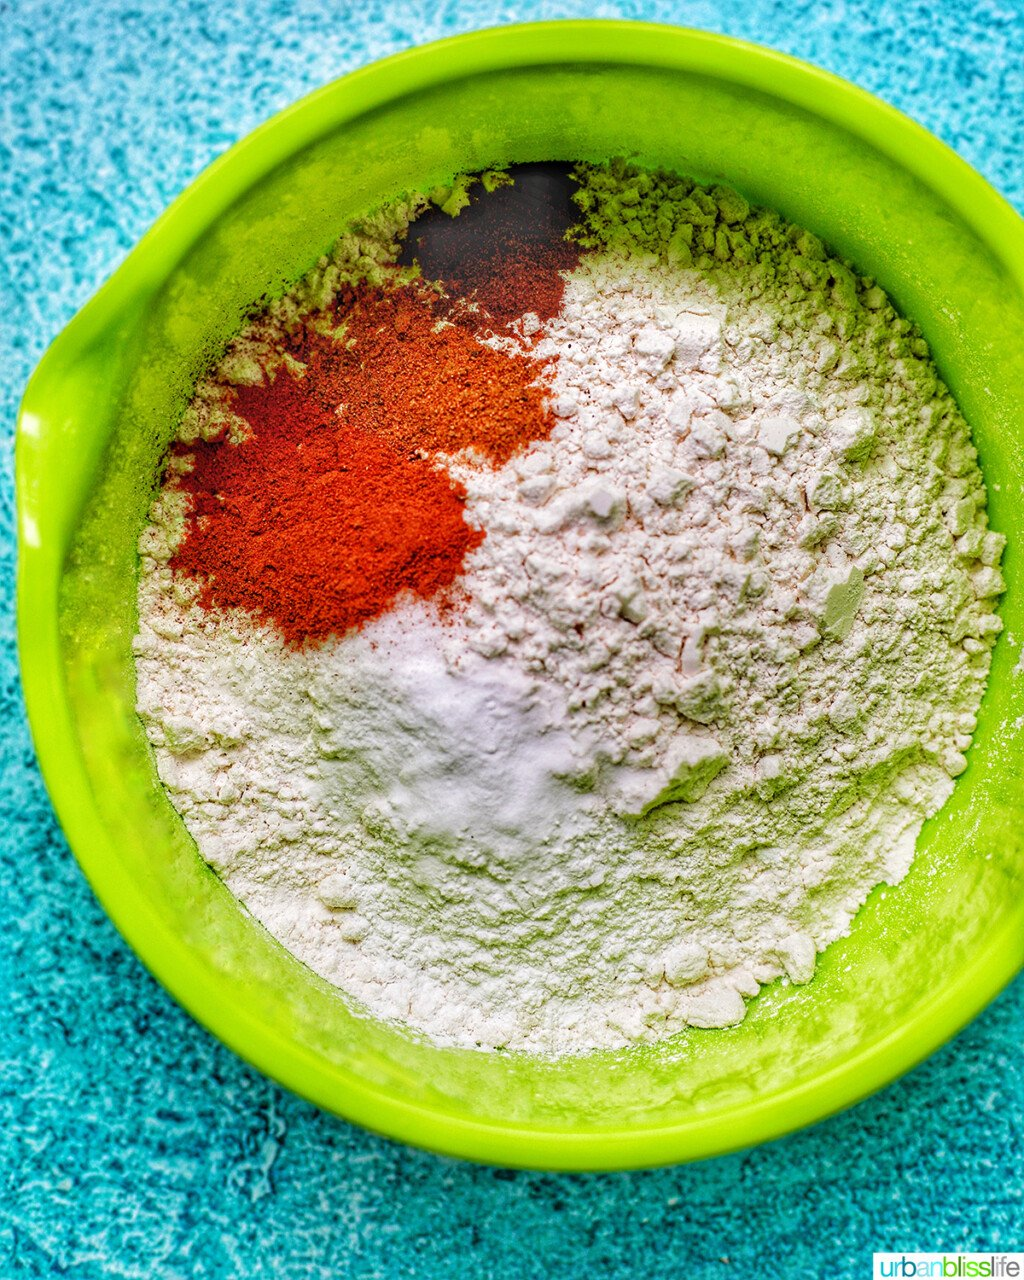 dry flour mix for apple cinnamon donuts